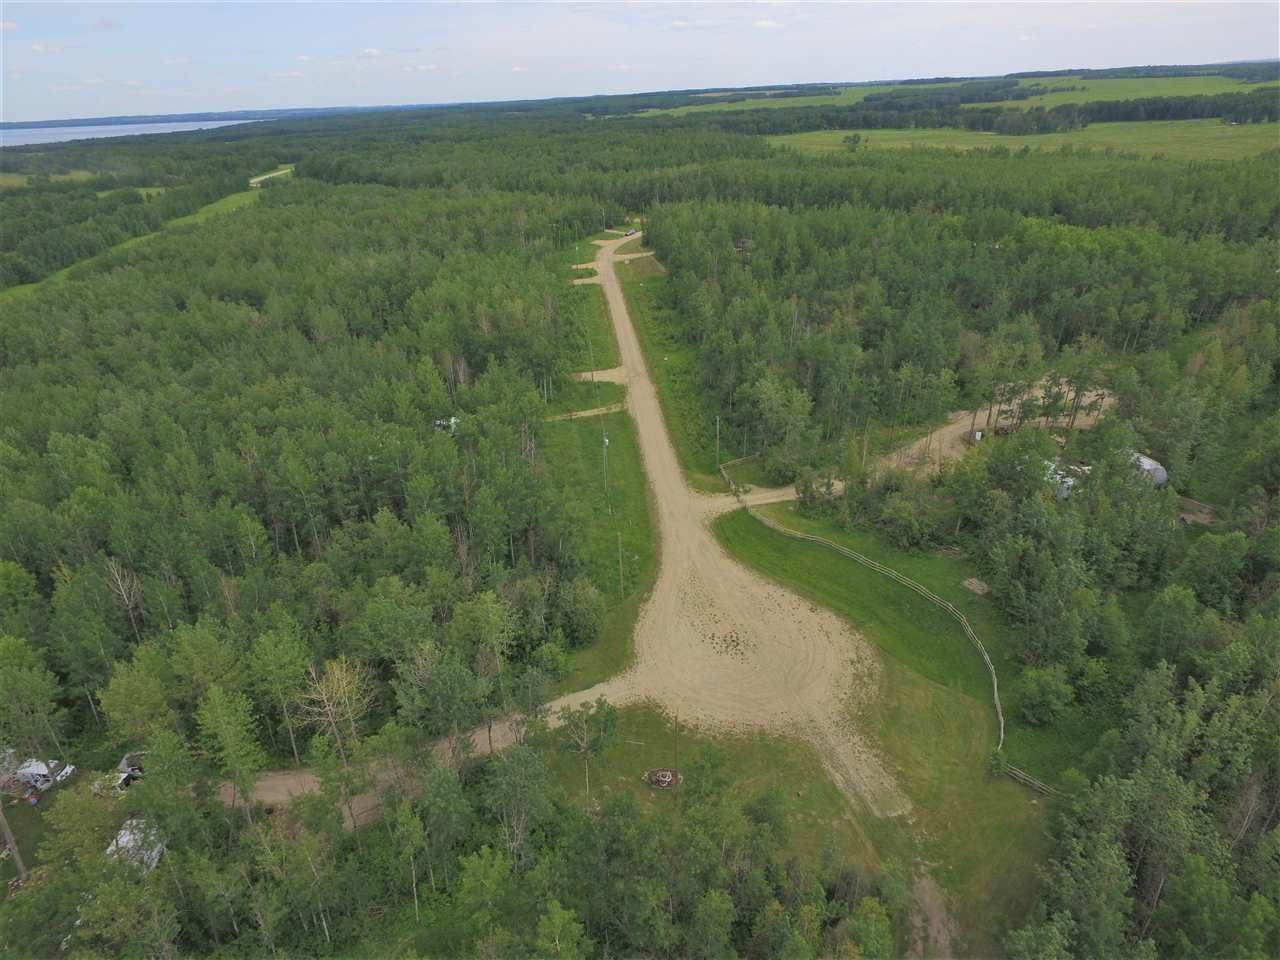 Photo 5: Photos: #11 13070 Twp Rd 464: Rural Wetaskiwin County Rural Land/Vacant Lot for sale : MLS®# E4195644